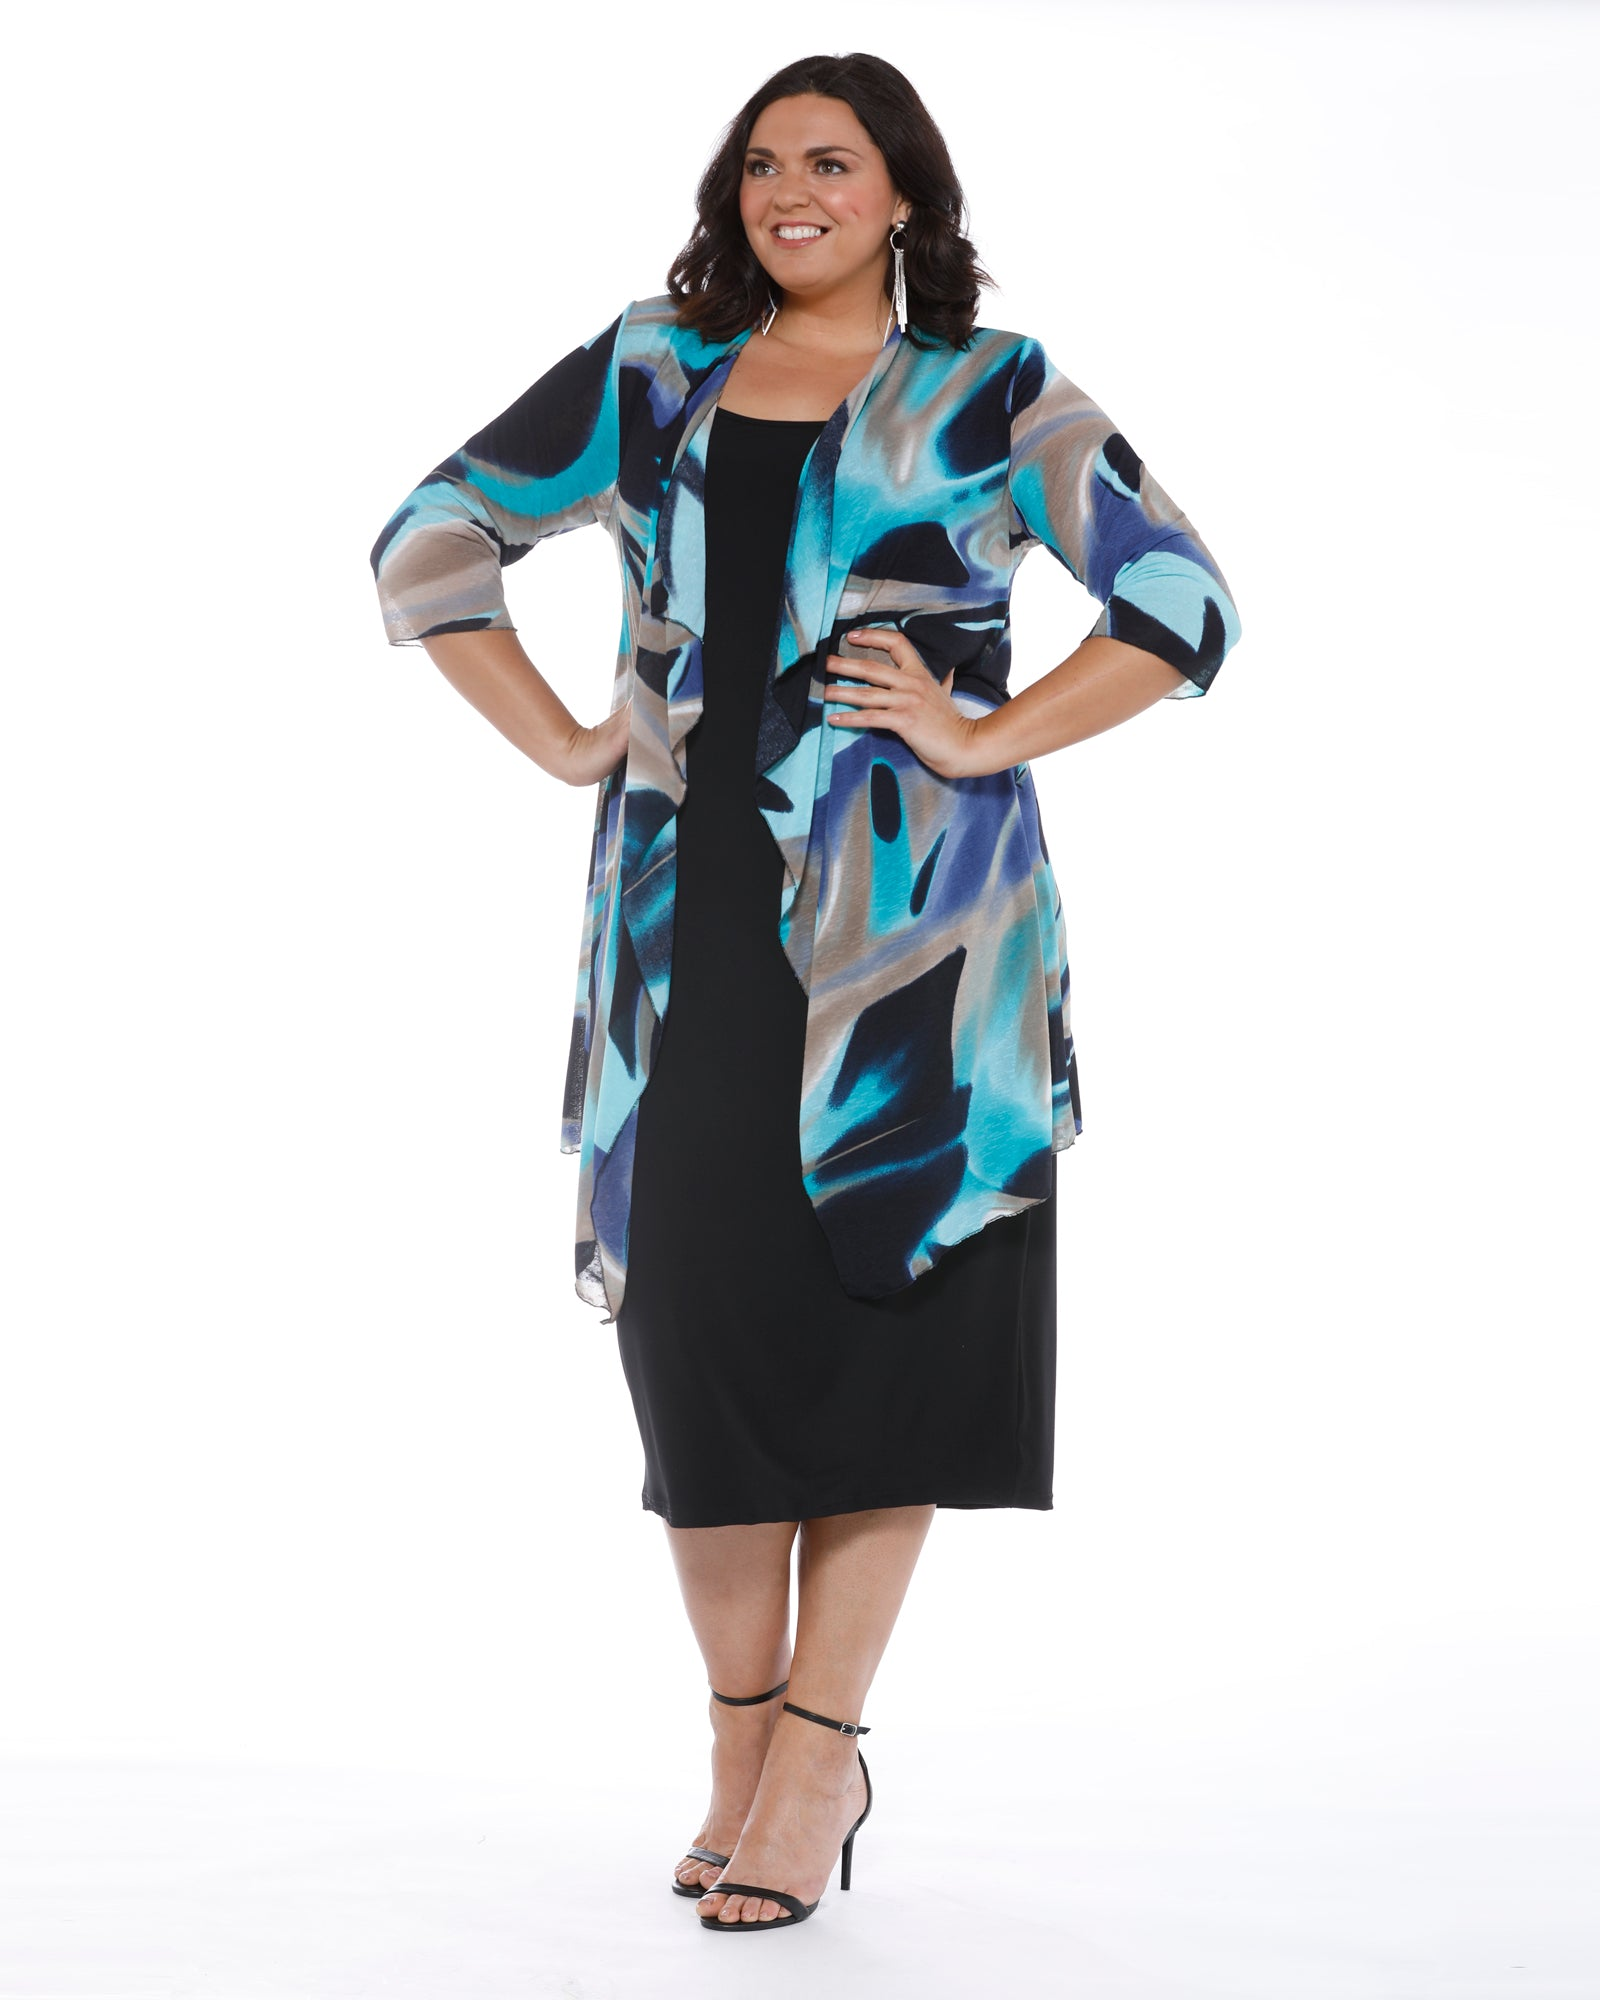 RTM Cover Up, RTM Duster Jacket, Plus size